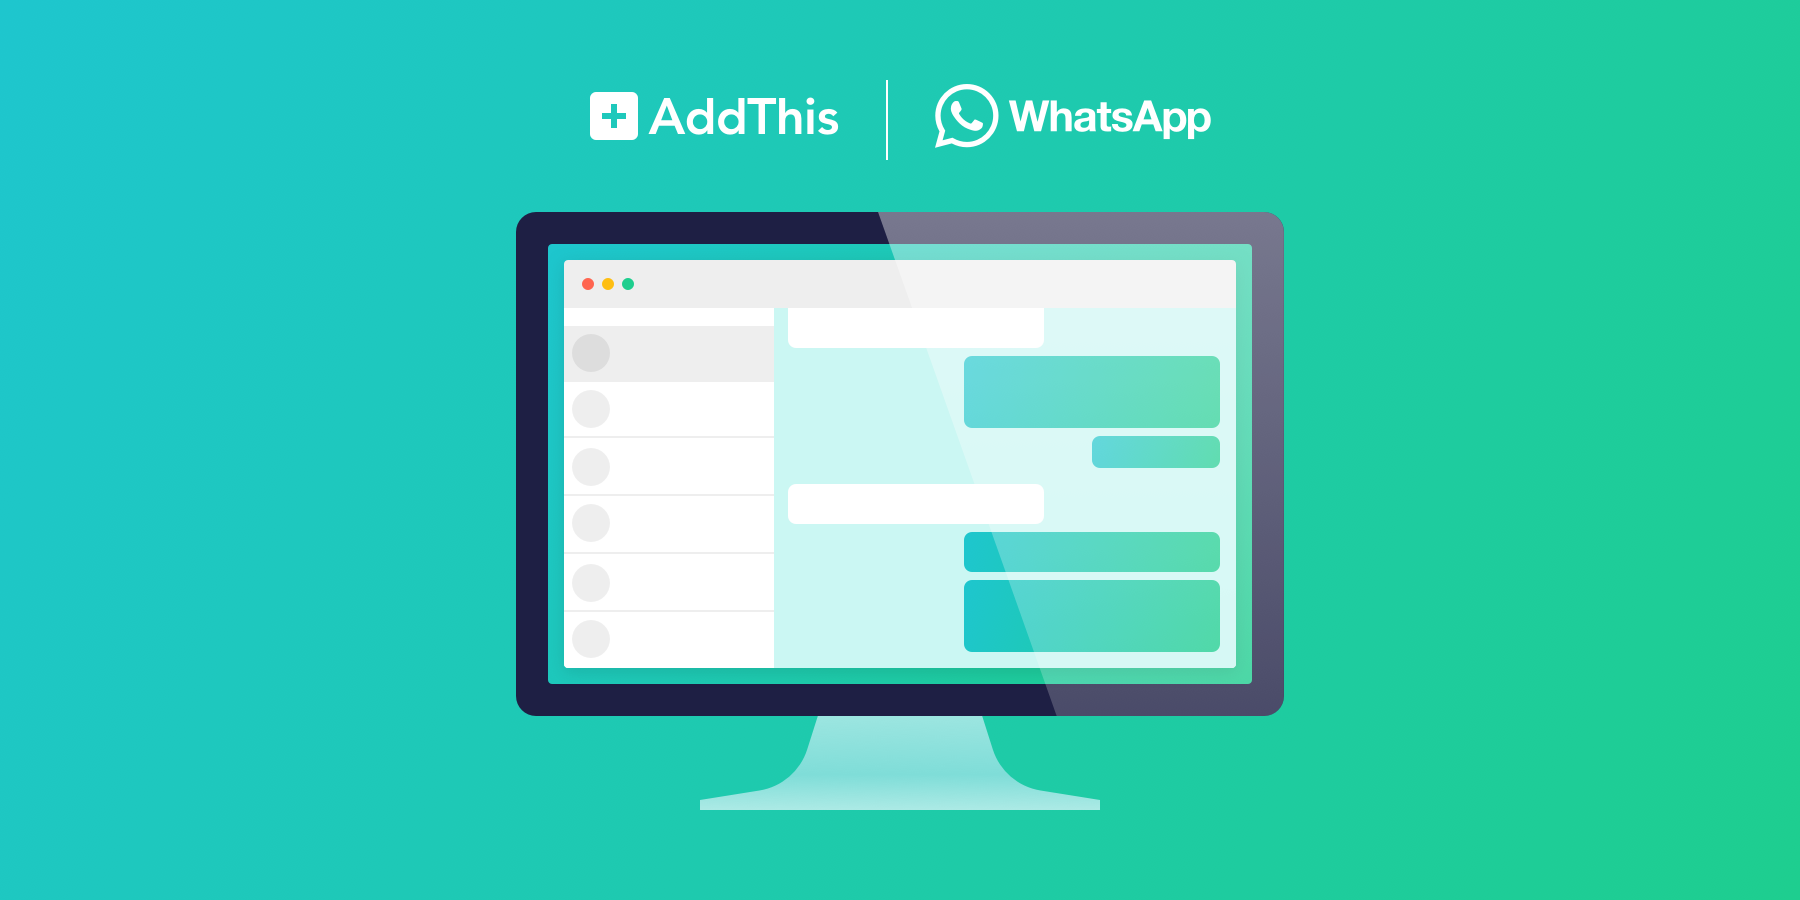 whatsapp sharing now available on desktop addthis